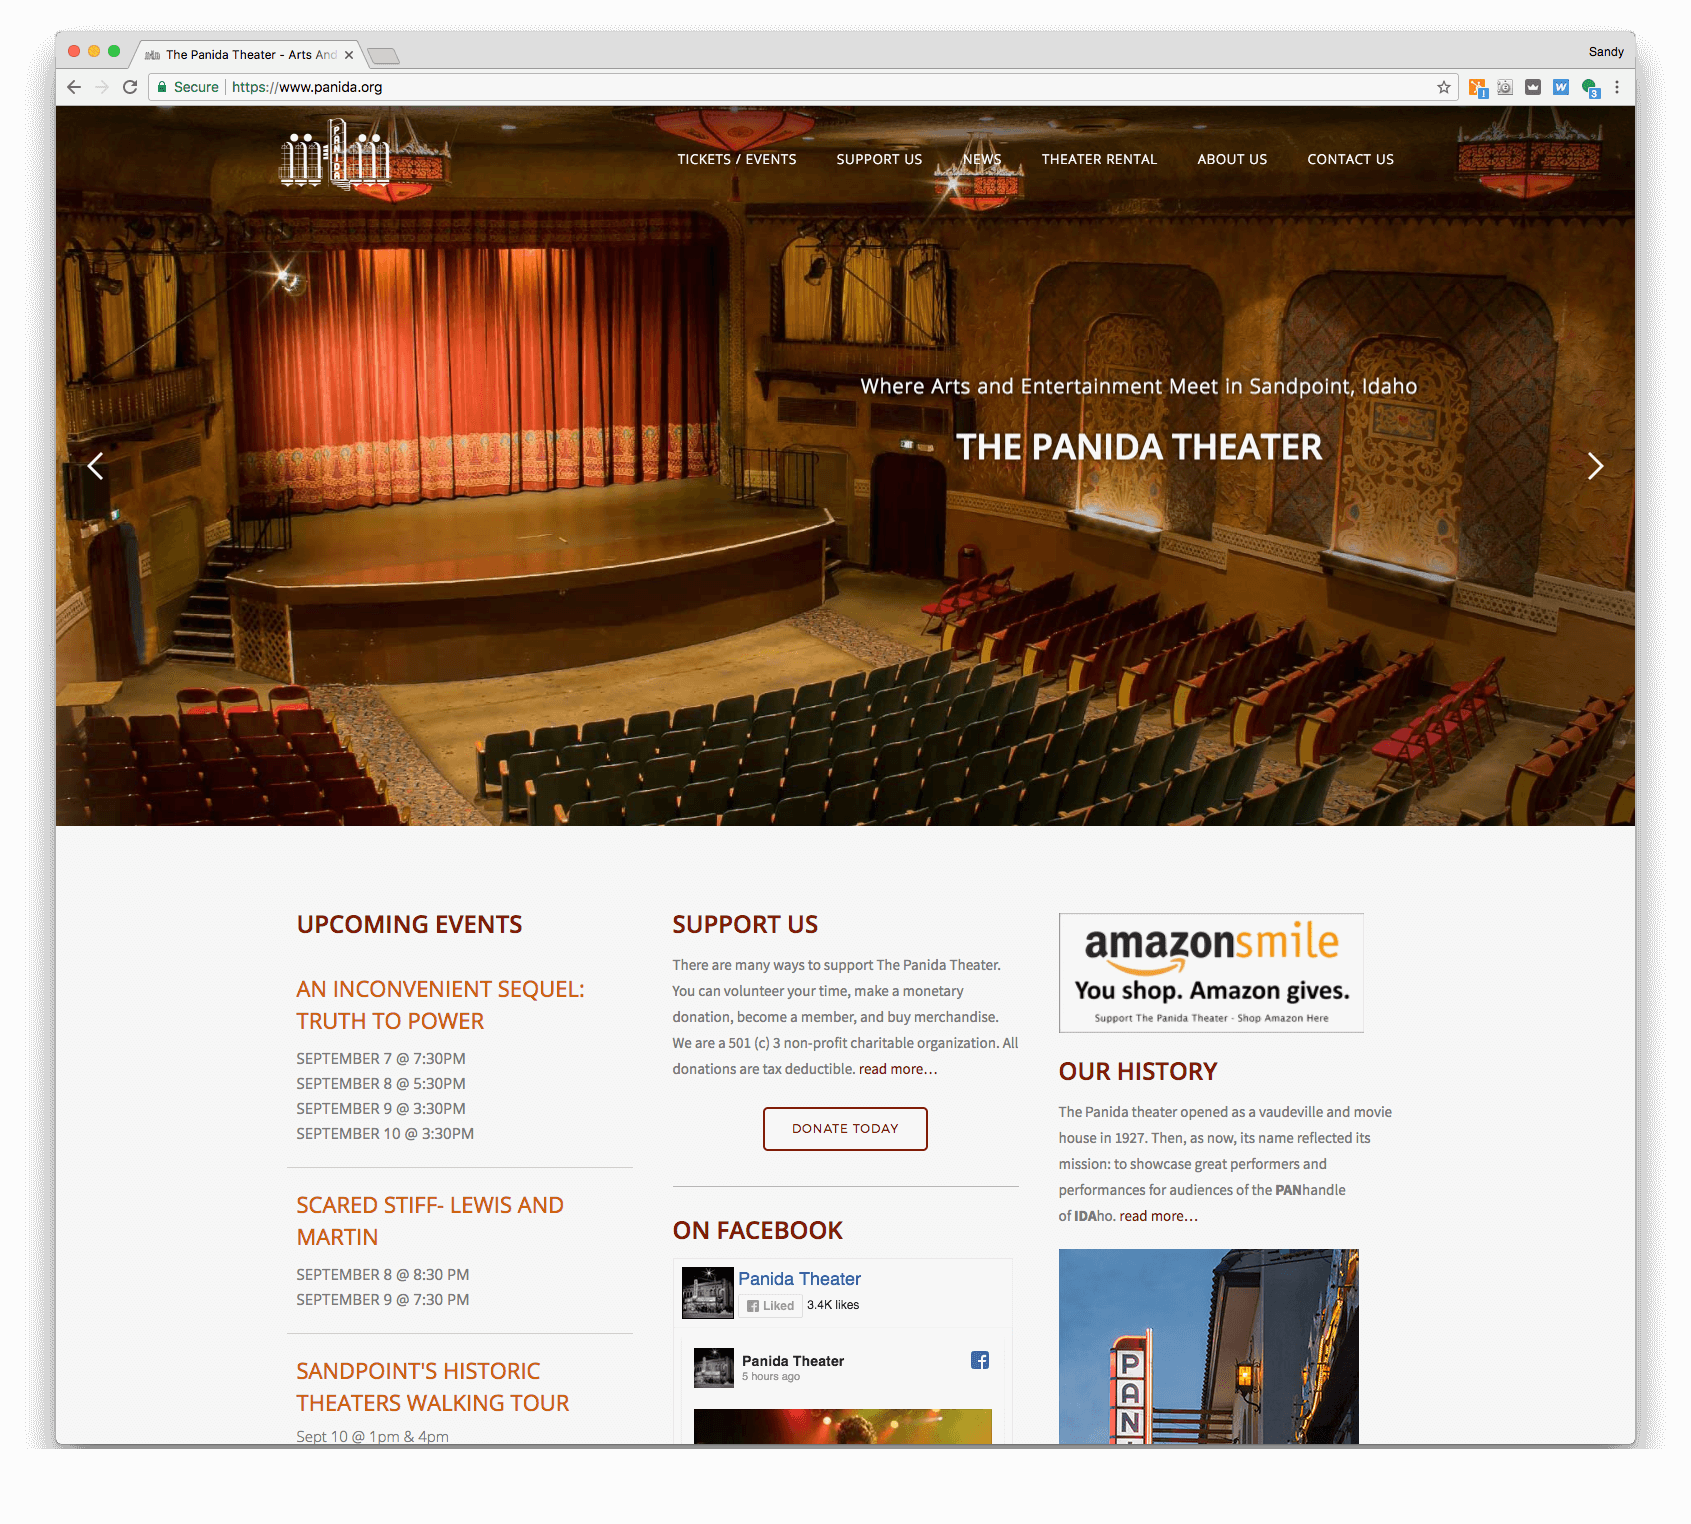 The Panida Theater website